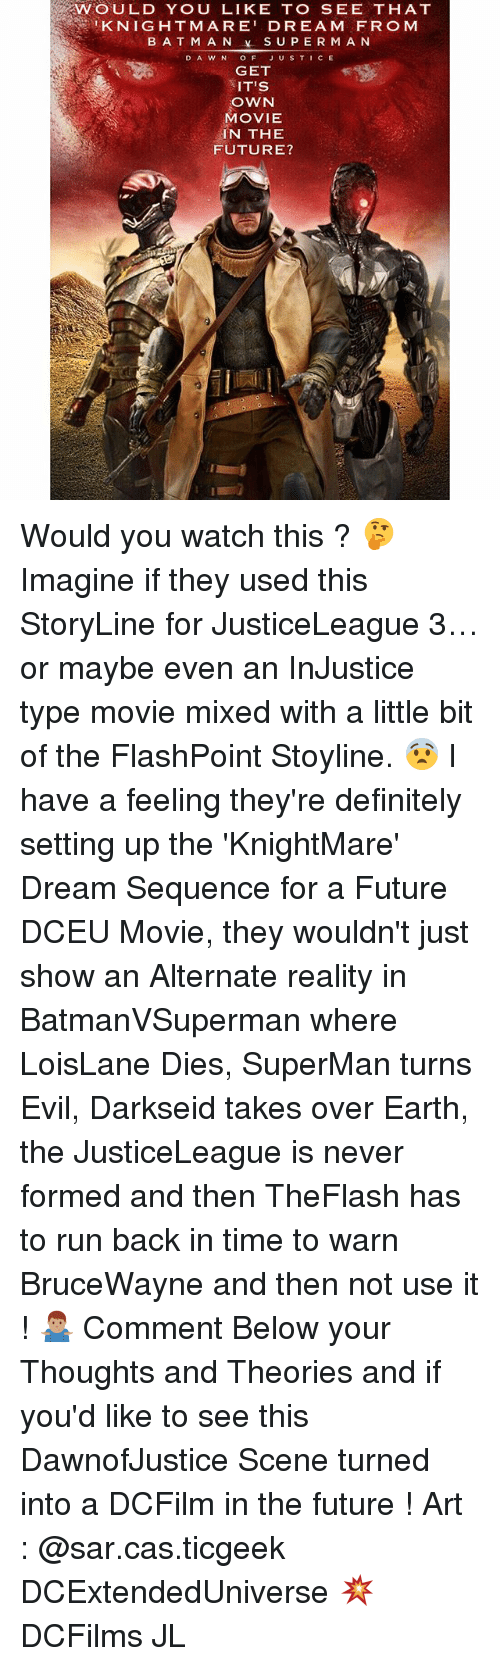 Batman, Definitely, and Future: WOULD YOU LIKE TO SEE THAT  KNIGHTMARE' DREAM FRO M  BATMAN  SUPERMAN  DAWN OF JUSTICE  GET  IT'S  OWN  MOVIE  IN THE  FUTURE? Would you watch this ? 🤔 Imagine if they used this StoryLine for JusticeLeague 3…or maybe even an InJustice type movie mixed with a little bit of the FlashPoint Stoyline. 😨 I have a feeling they're definitely setting up the 'KnightMare' Dream Sequence for a Future DCEU Movie, they wouldn't just show an Alternate reality in BatmanVSuperman where LoisLane Dies, SuperMan turns Evil, Darkseid takes over Earth, the JusticeLeague is never formed and then TheFlash has to run back in time to warn BruceWayne and then not use it ! 🤷🏽‍♂️ Comment Below your Thoughts and Theories and if you'd like to see this DawnofJustice Scene turned into a DCFilm in the future ! Art : @sar.cas.ticgeek DCExtendedUniverse 💥 DCFilms JL